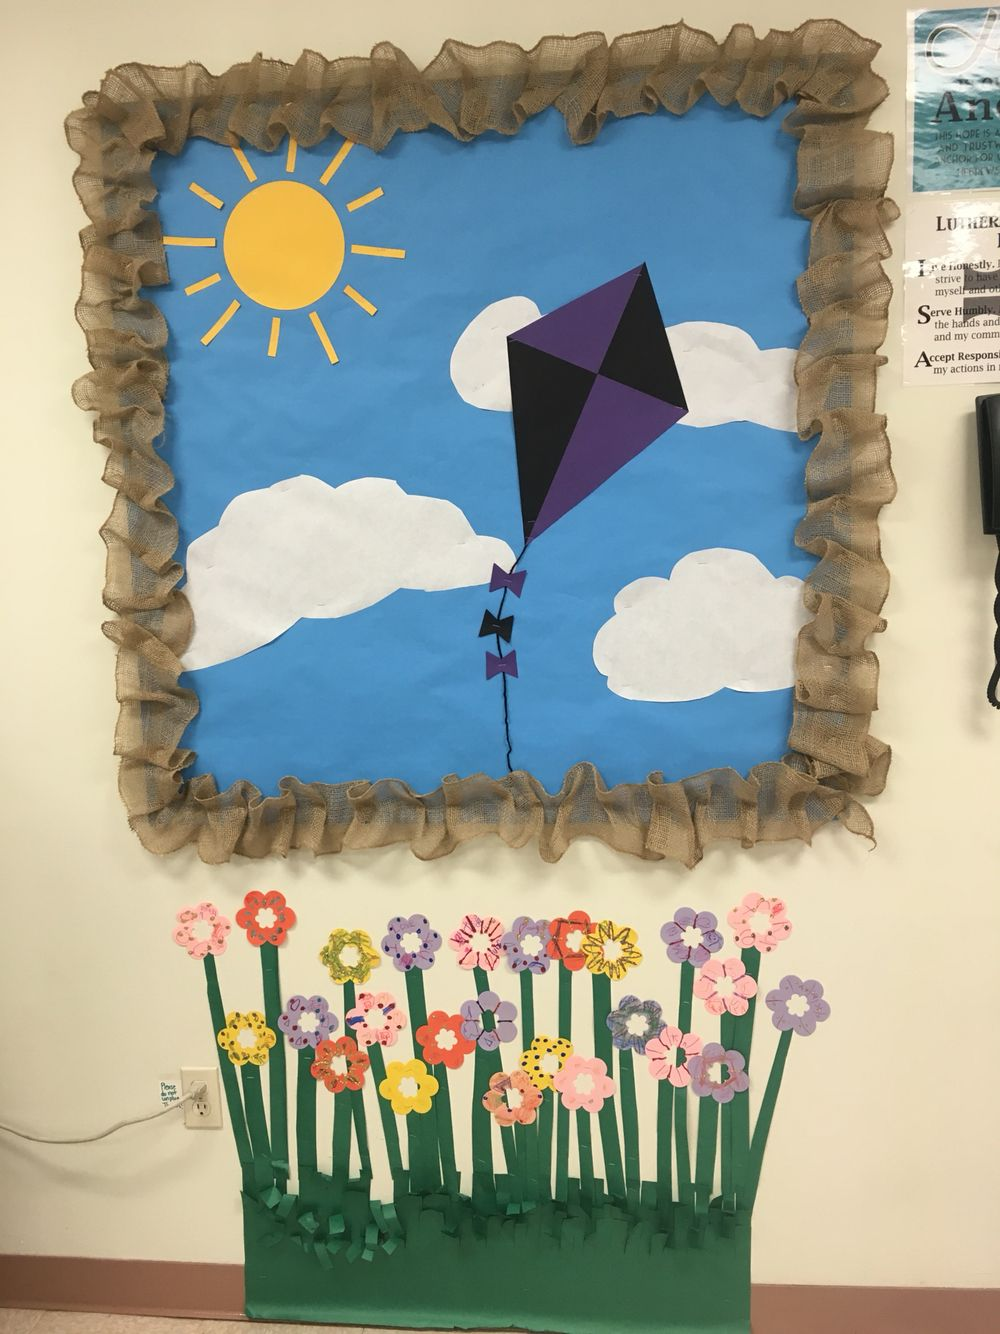 Go green vegetable bulletin board idea myclassroomideas com - Spring Or Summer End Of The Year Bulletin Board With Kite Clouds Sun